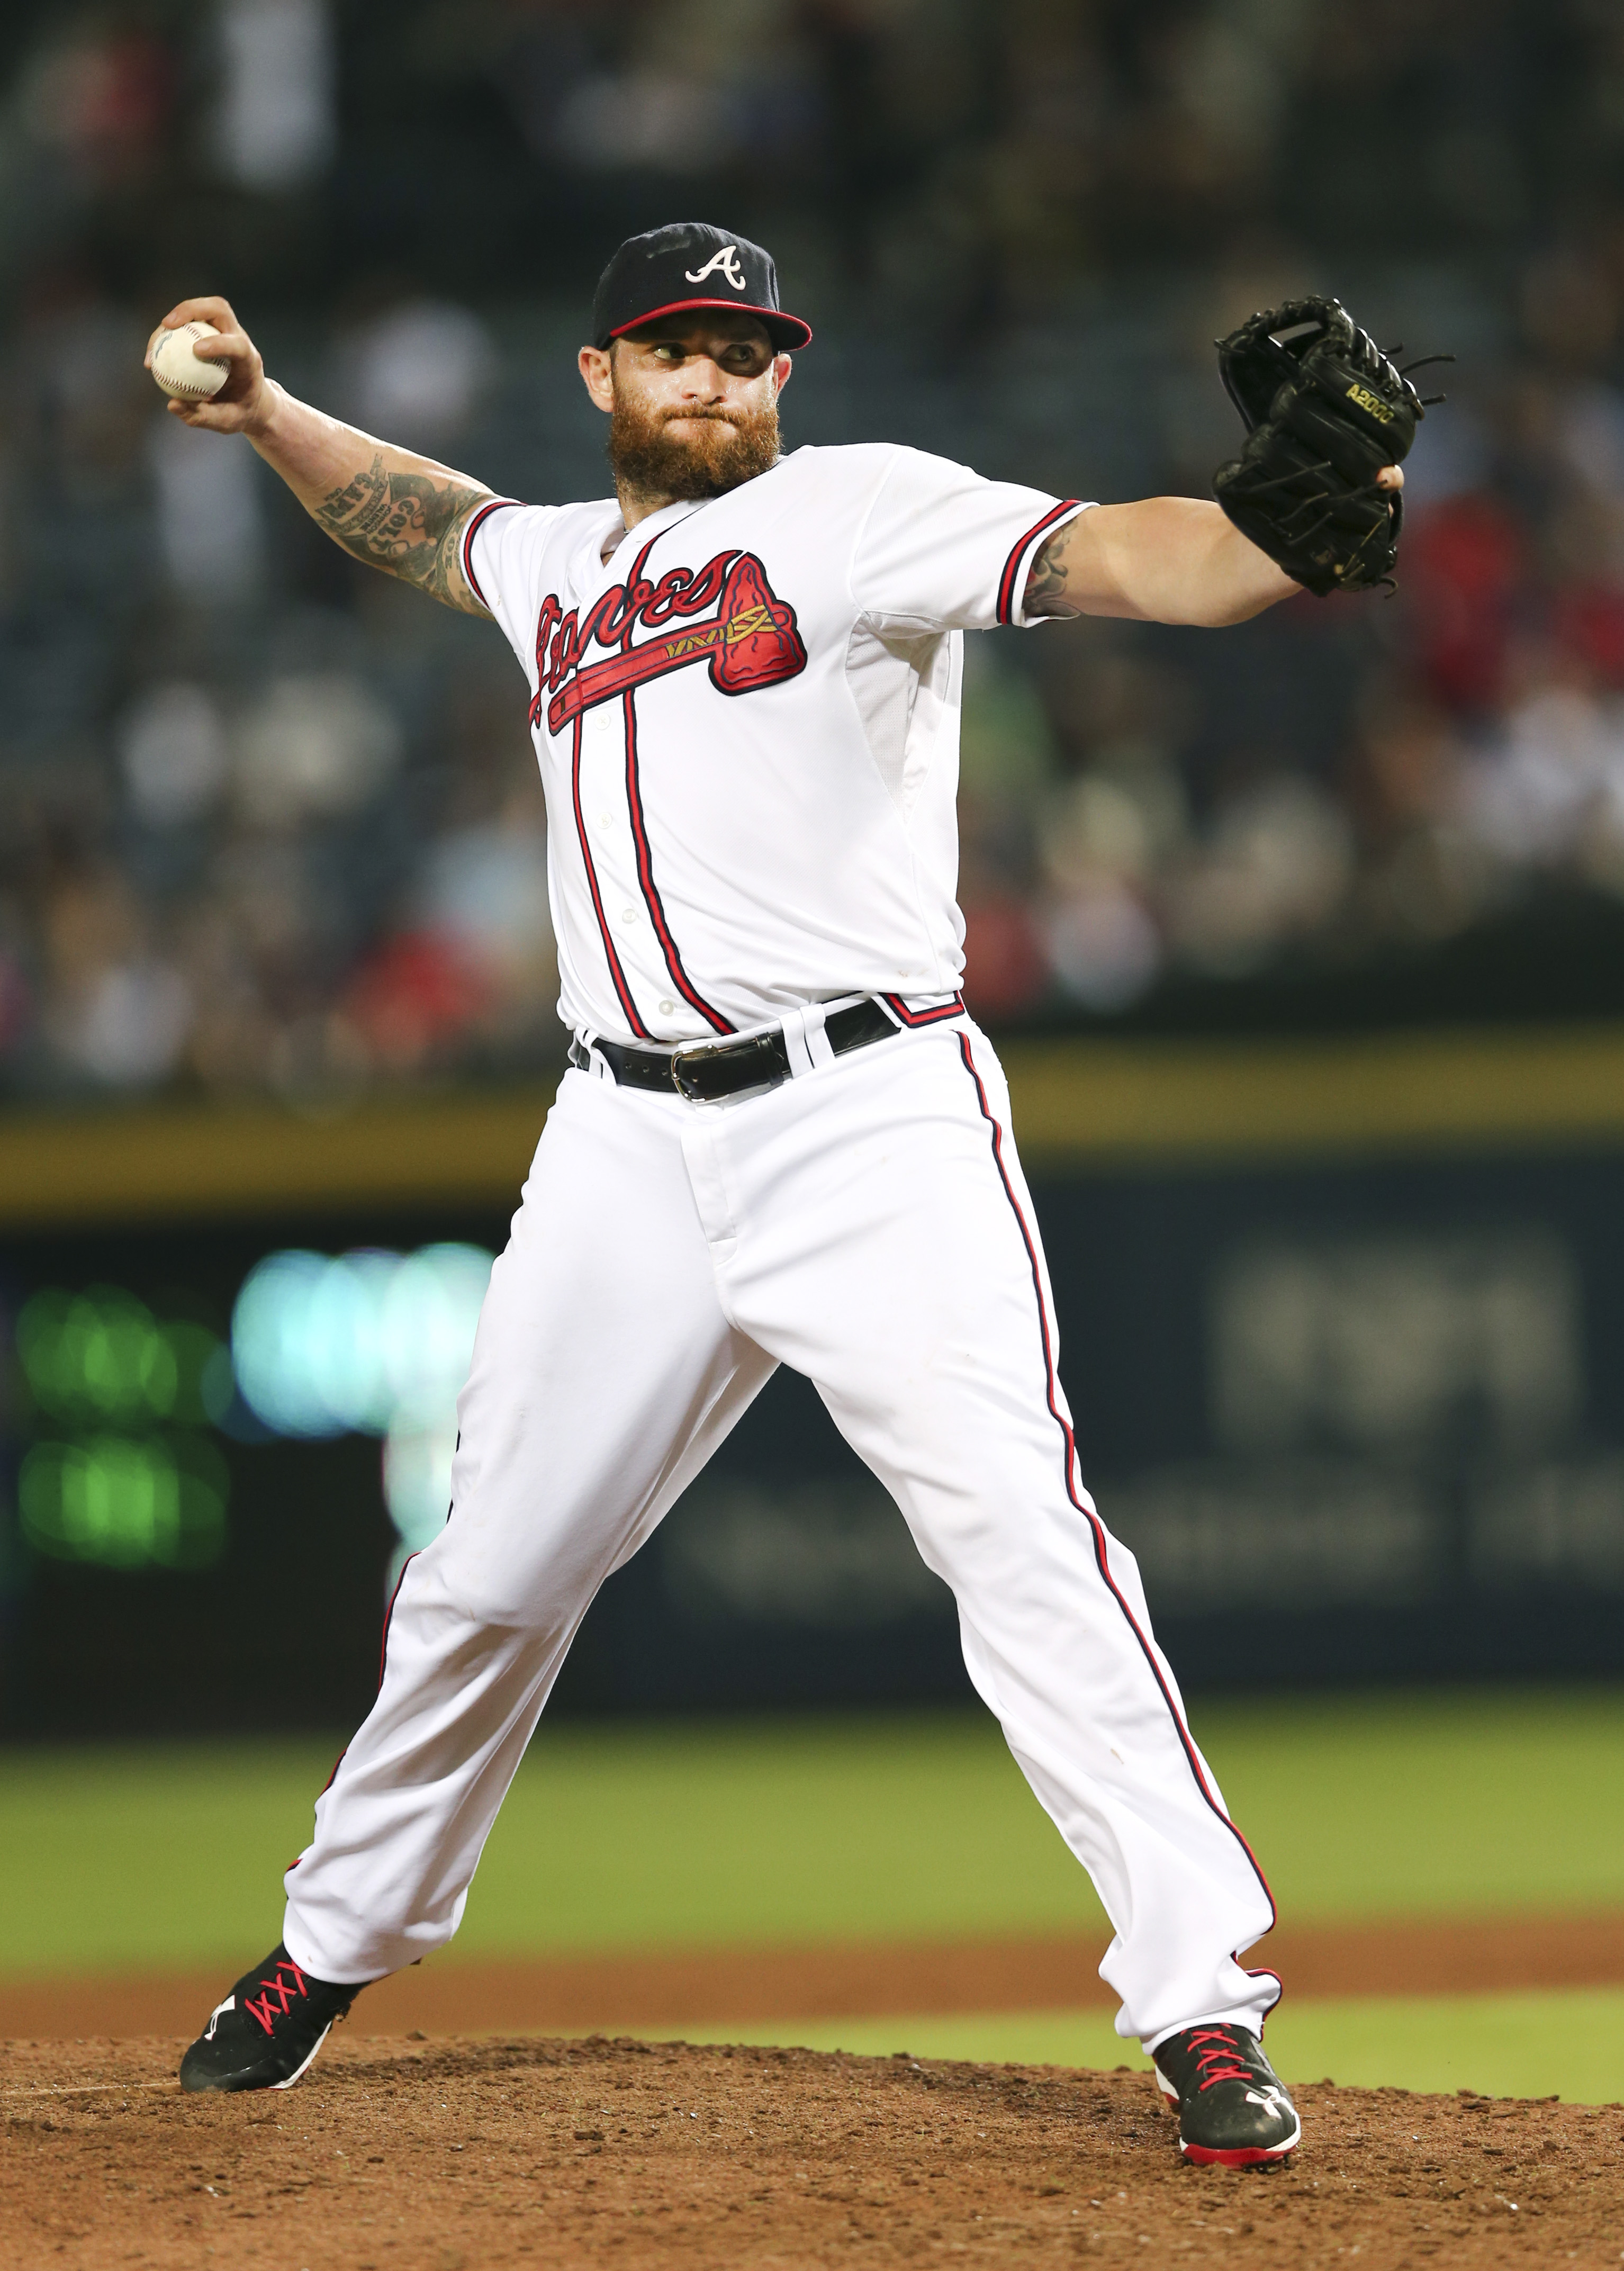 Atlanta Braves' Jonny Gomes pitches in relief in the ninth inning of a baseball game against the New York Yankees, Friday, Aug. 28, 2015, in Atlanta. (AP Photo/John Bazemore)